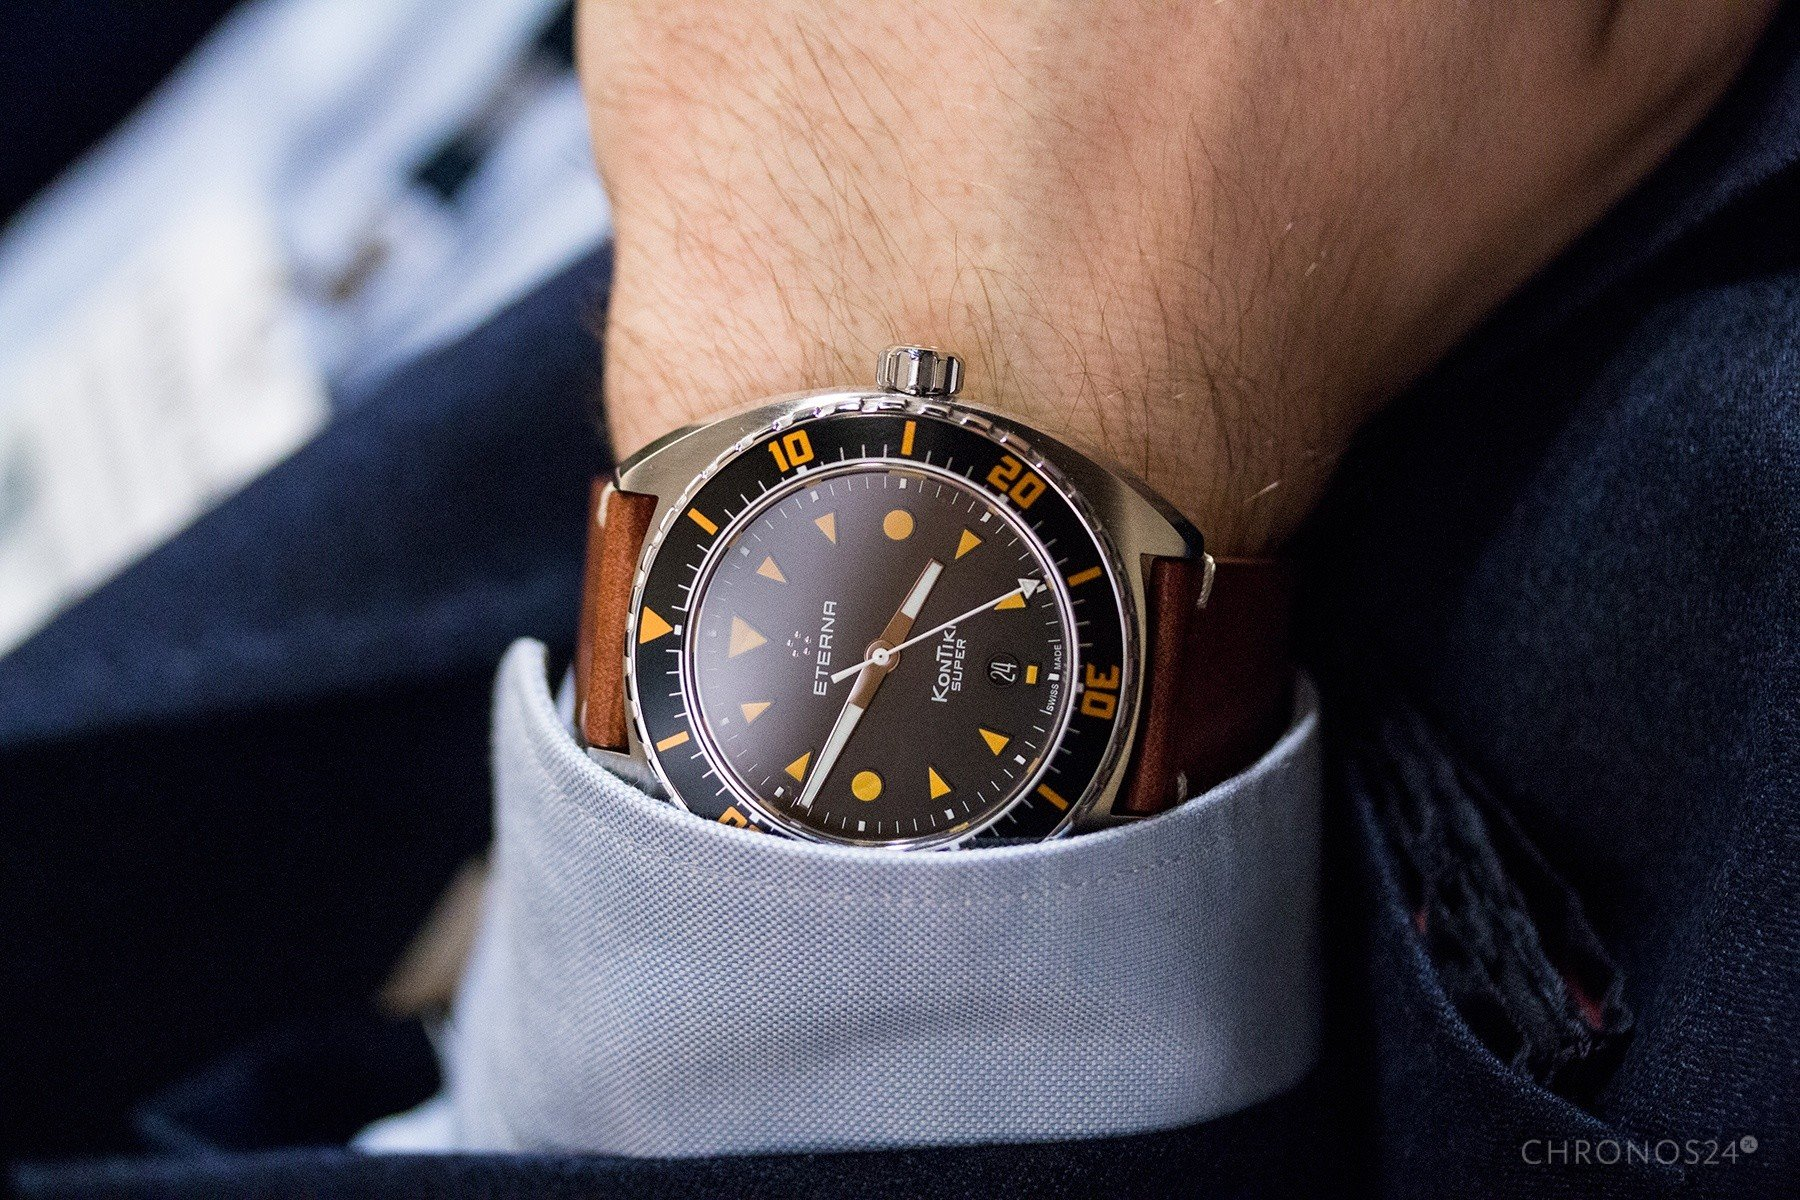 Eterna Super KonTiki